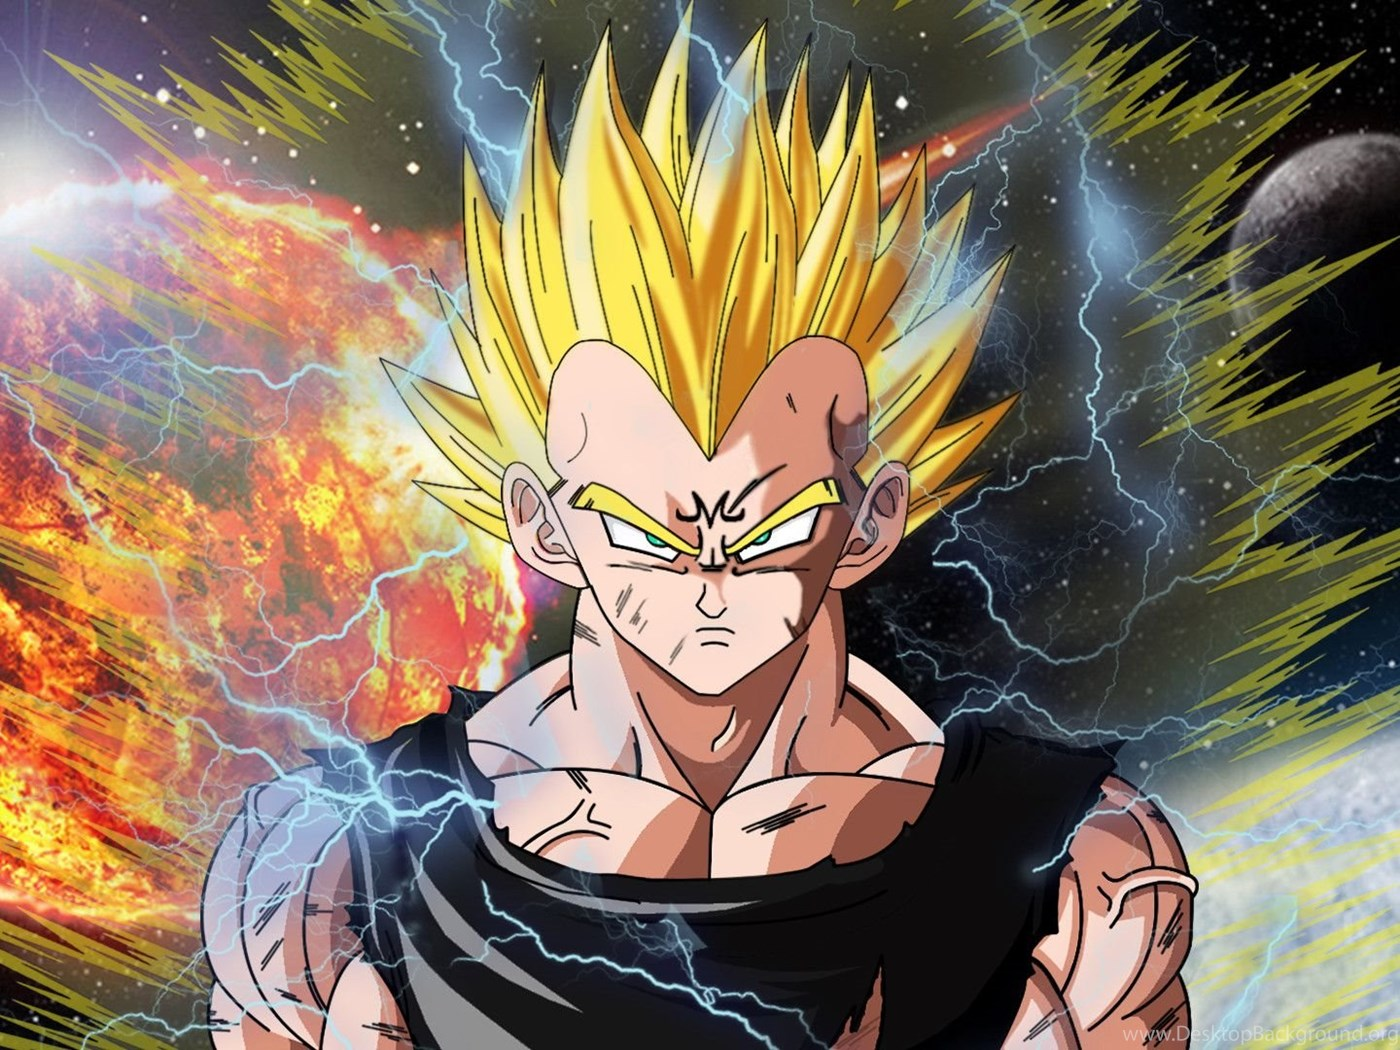 Majin vegeta wallpapers wallpapers cave desktop background - Dragon ball z majin vegeta wallpaper ...